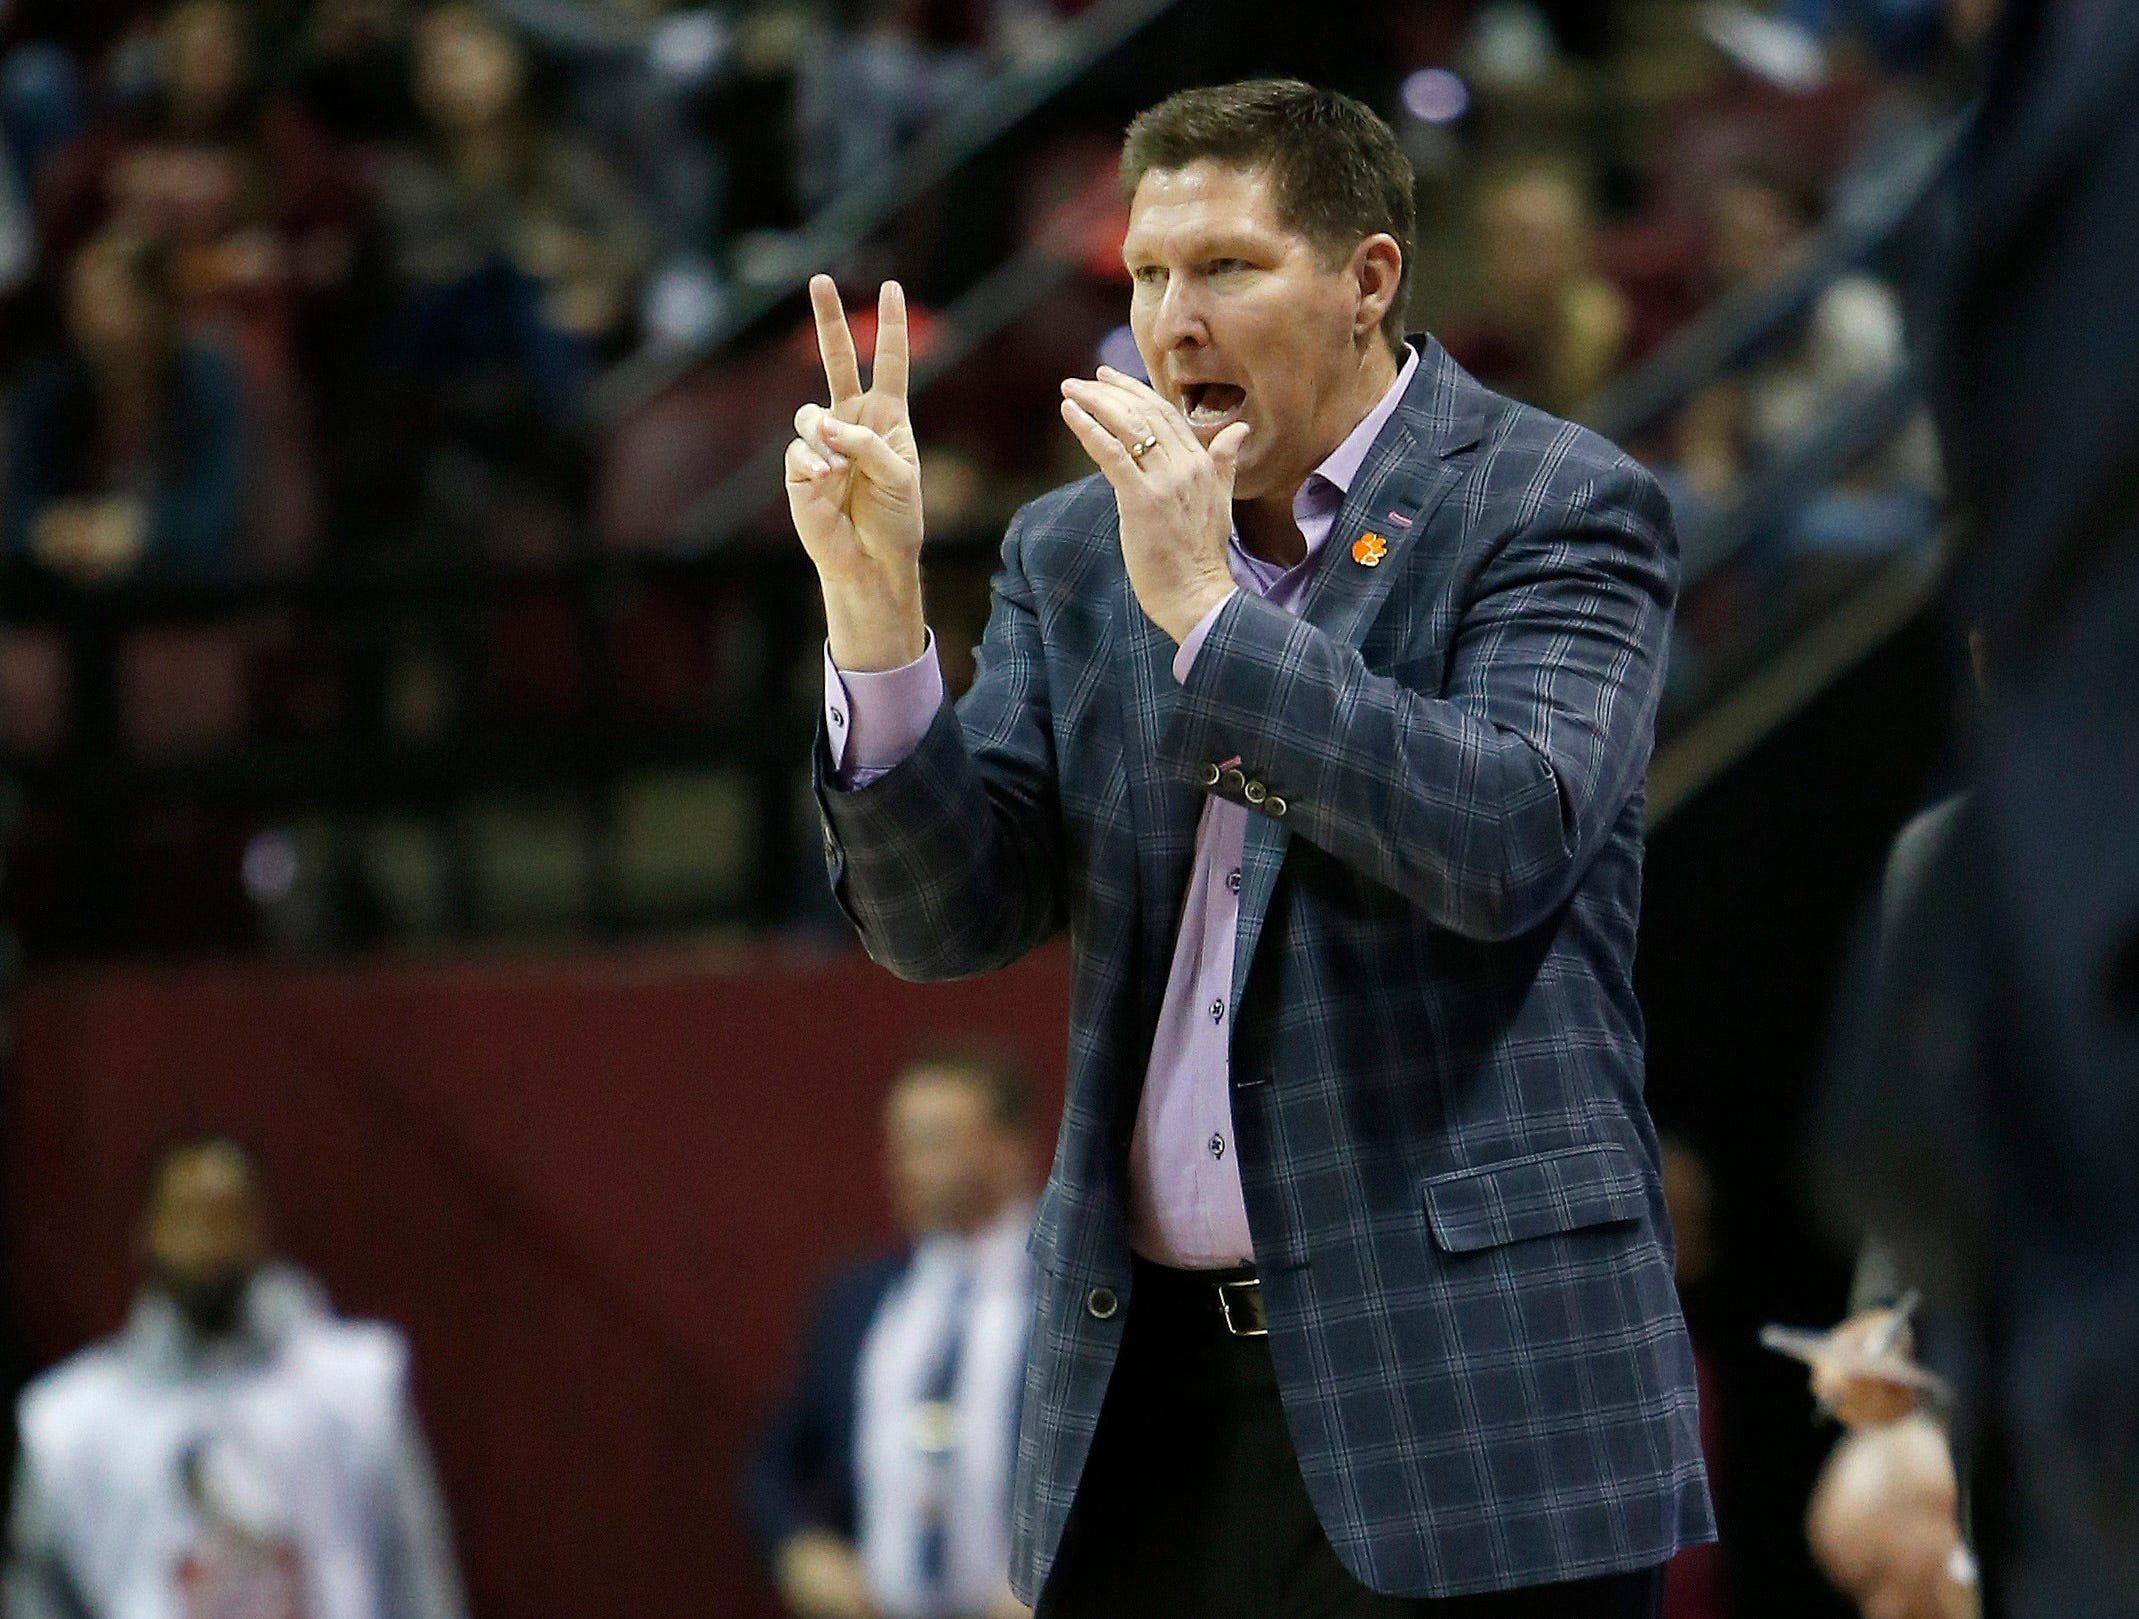 Jan 22, 2019; Tallahassee, FL, USA; Clemson Tigers head coach Brad Brownell  signals to his players during the first half against the Florida State Seminoles at Donald L. Tucker Center. Mandatory Credit: Glenn Beil-USA TODAY Sports